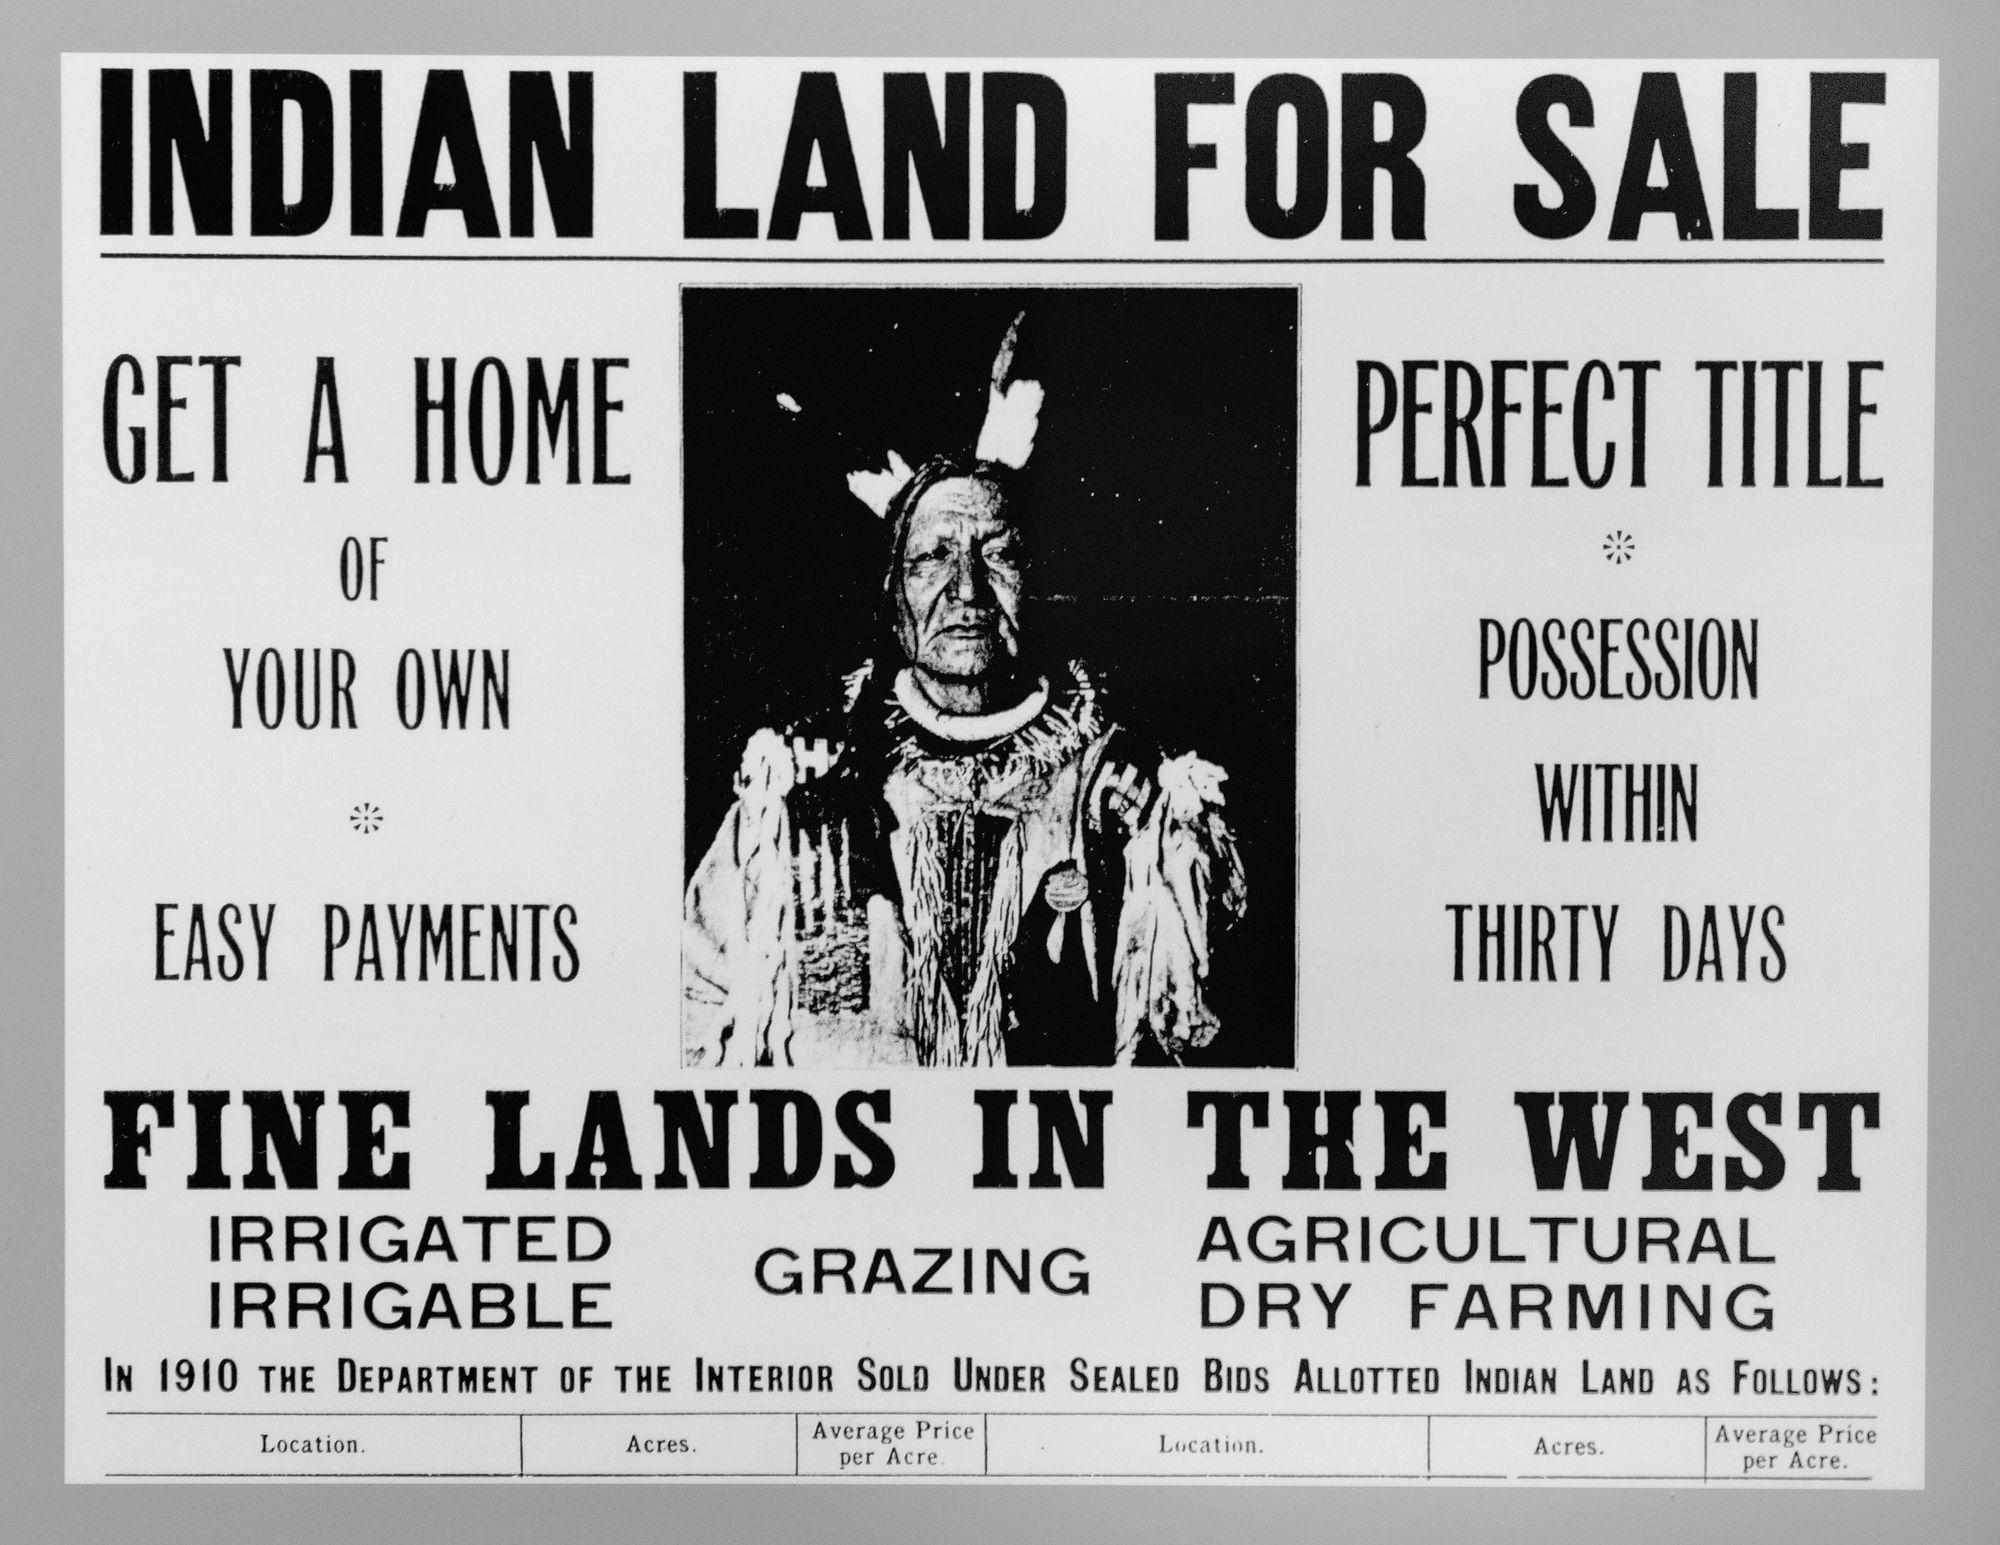 Vintage Indian Land For Sale poster, USA, around 1911